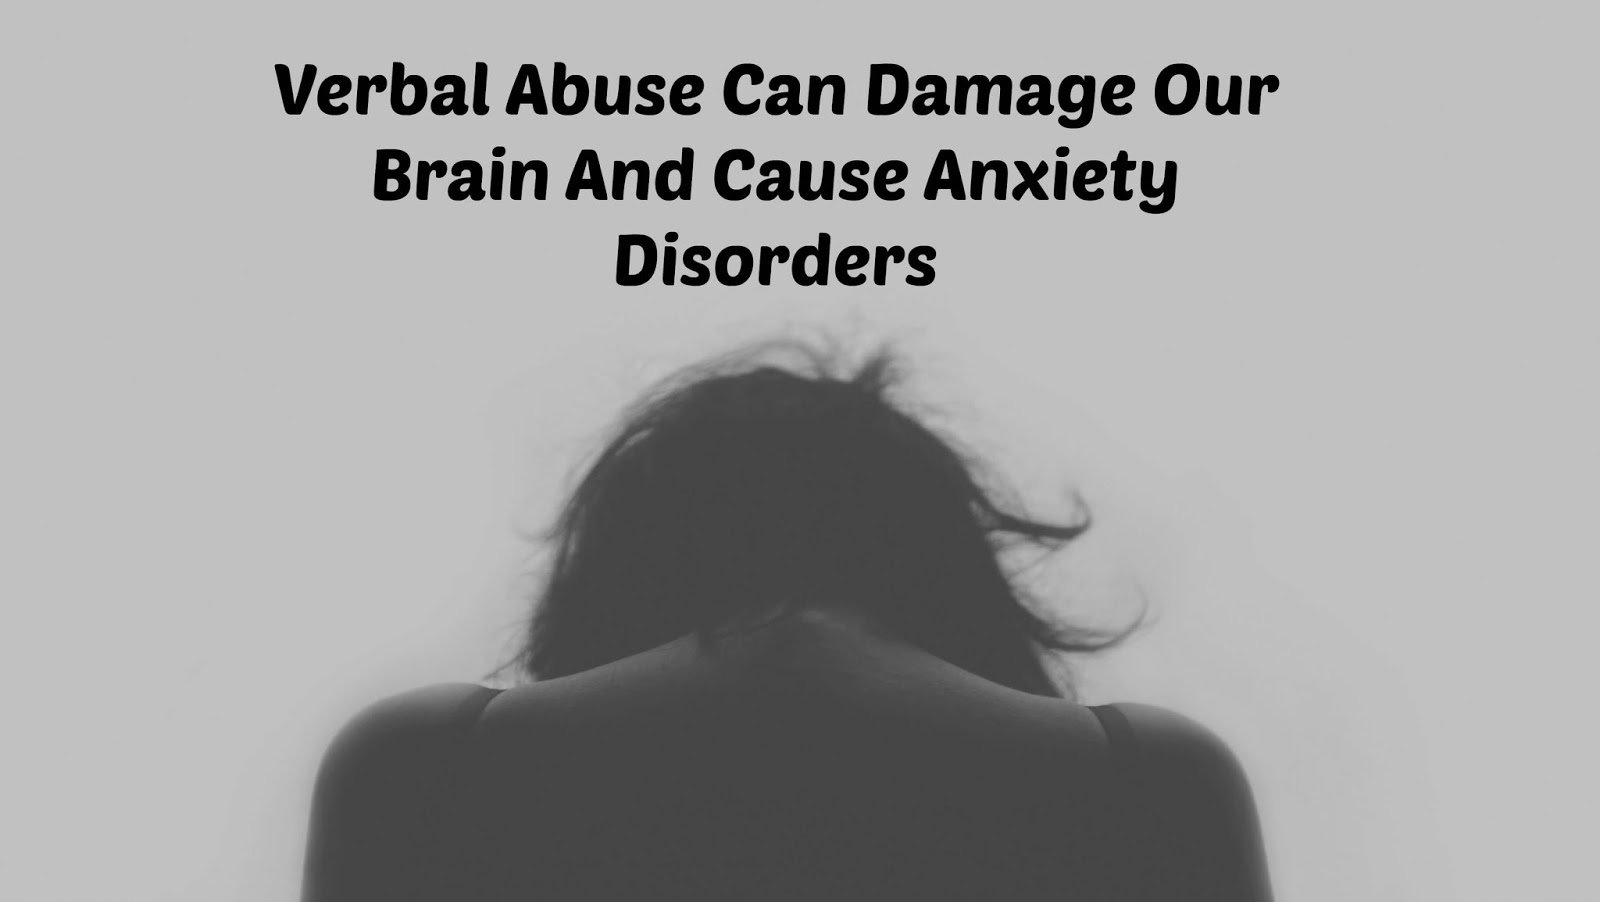 Verbal Abuse Can Damage Our Brain And Cause Anxiety Disorders